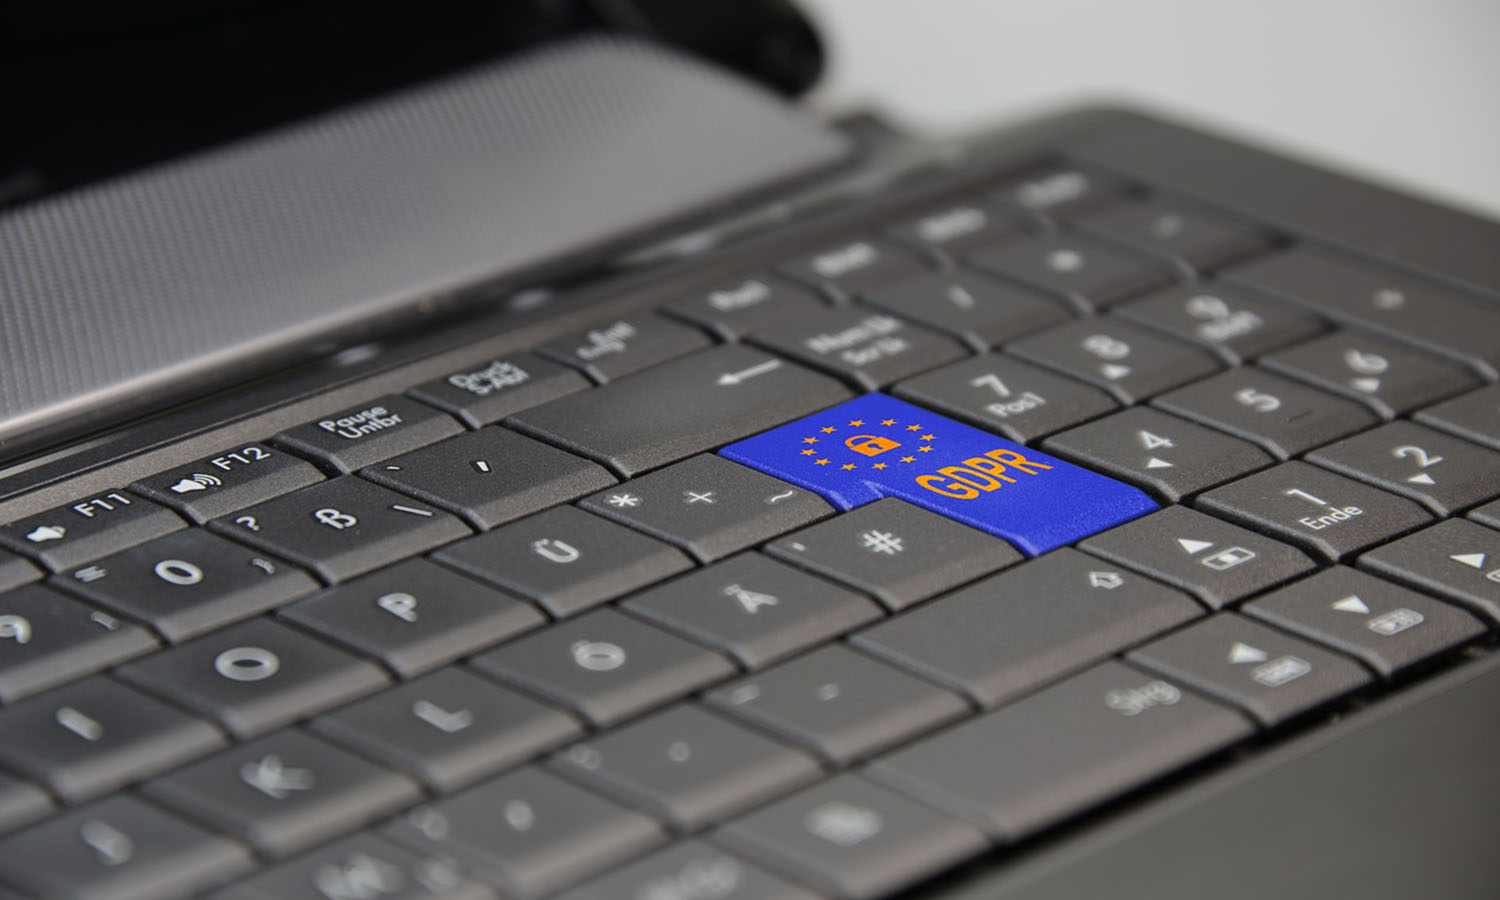 The Beginners Guide to Making Sure Your Company Emails are GDPR Compliant